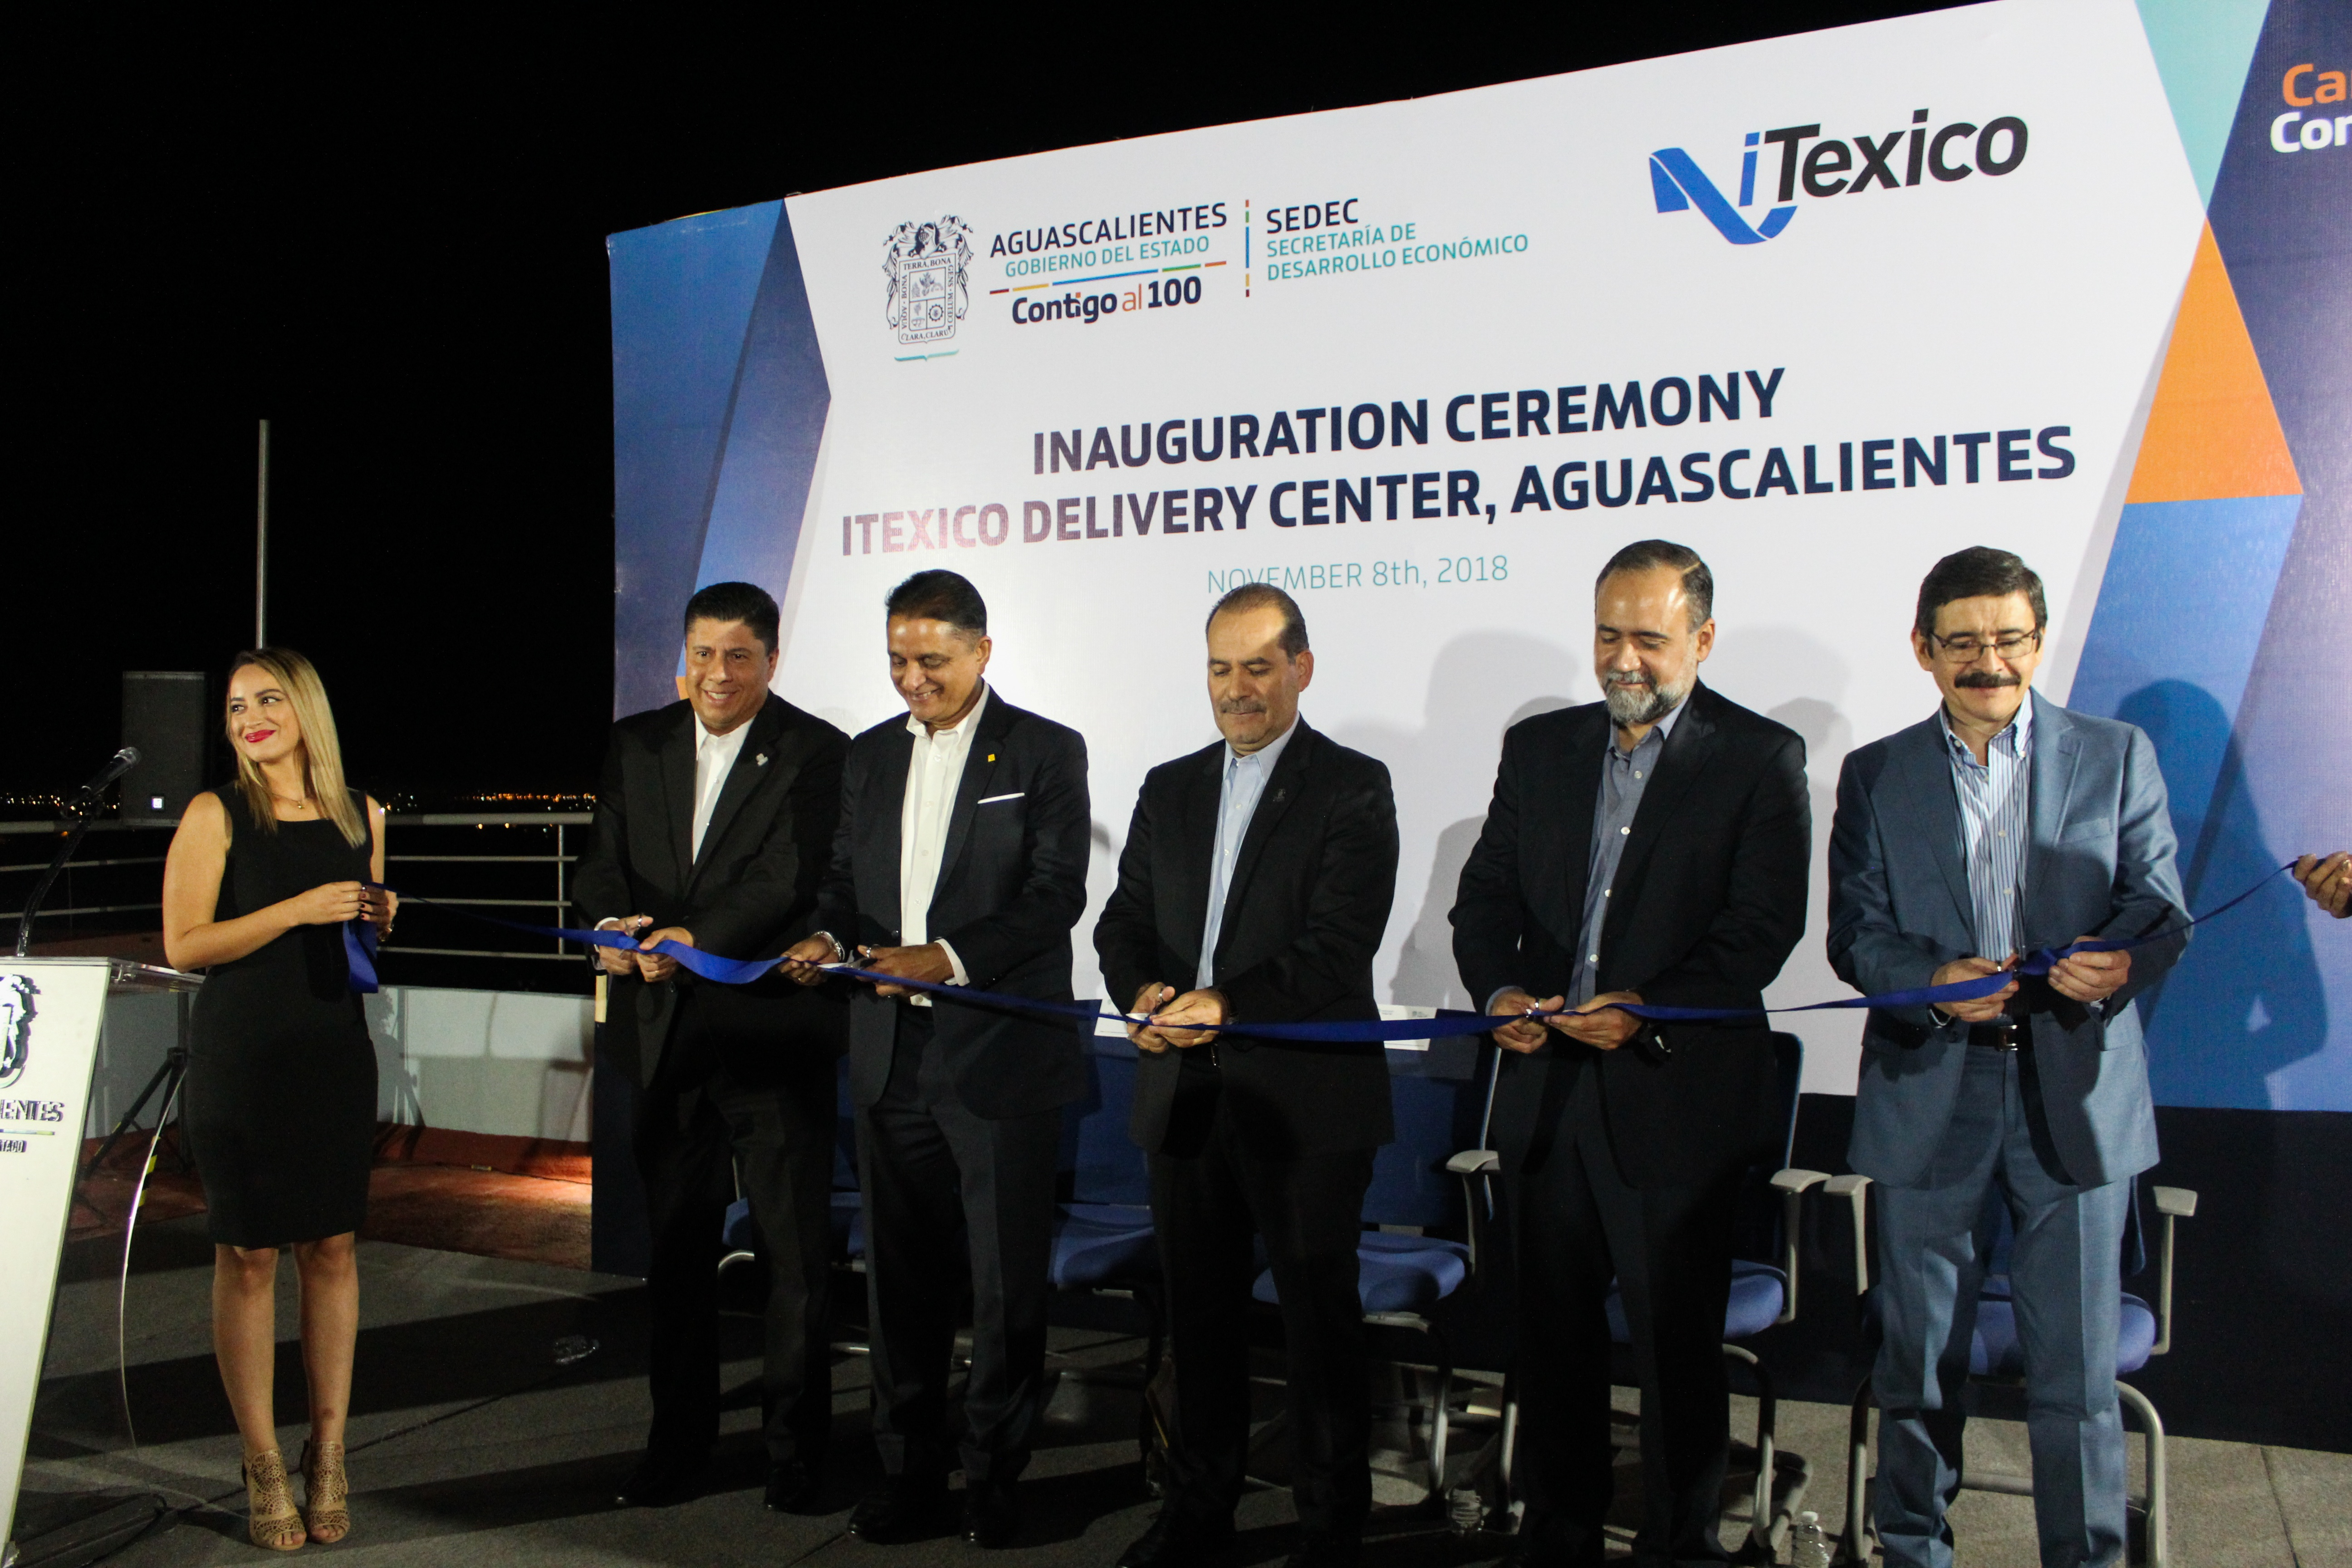 iTexico Announces Inauguration of new Delivery Center in Aguascalientes